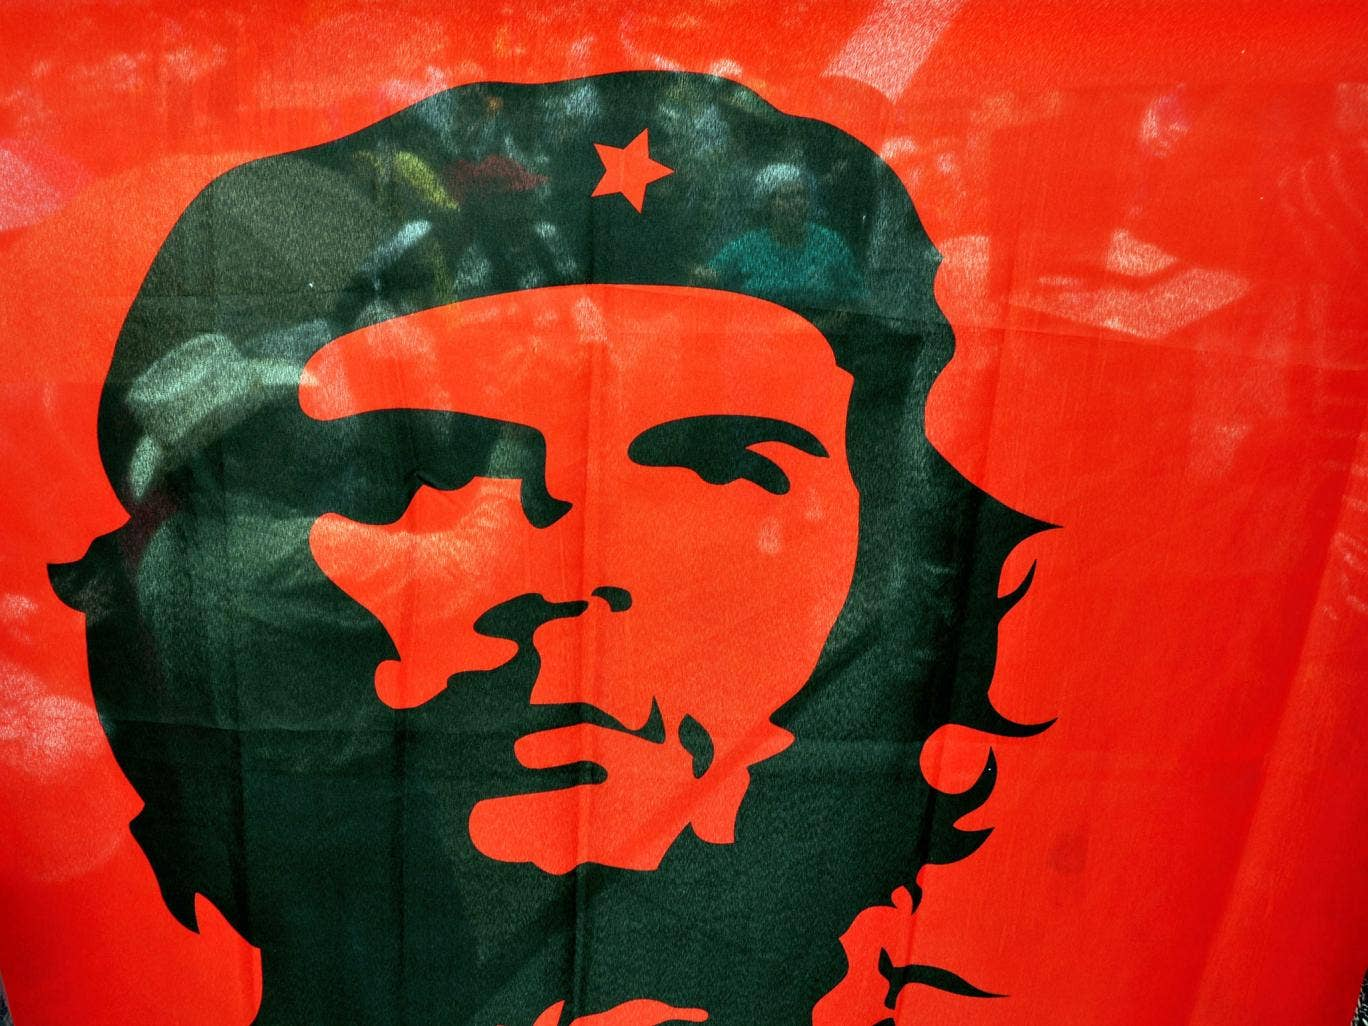 Emails about the renowned 'Commie' Che Guevara might not get through to Birmingham City Council